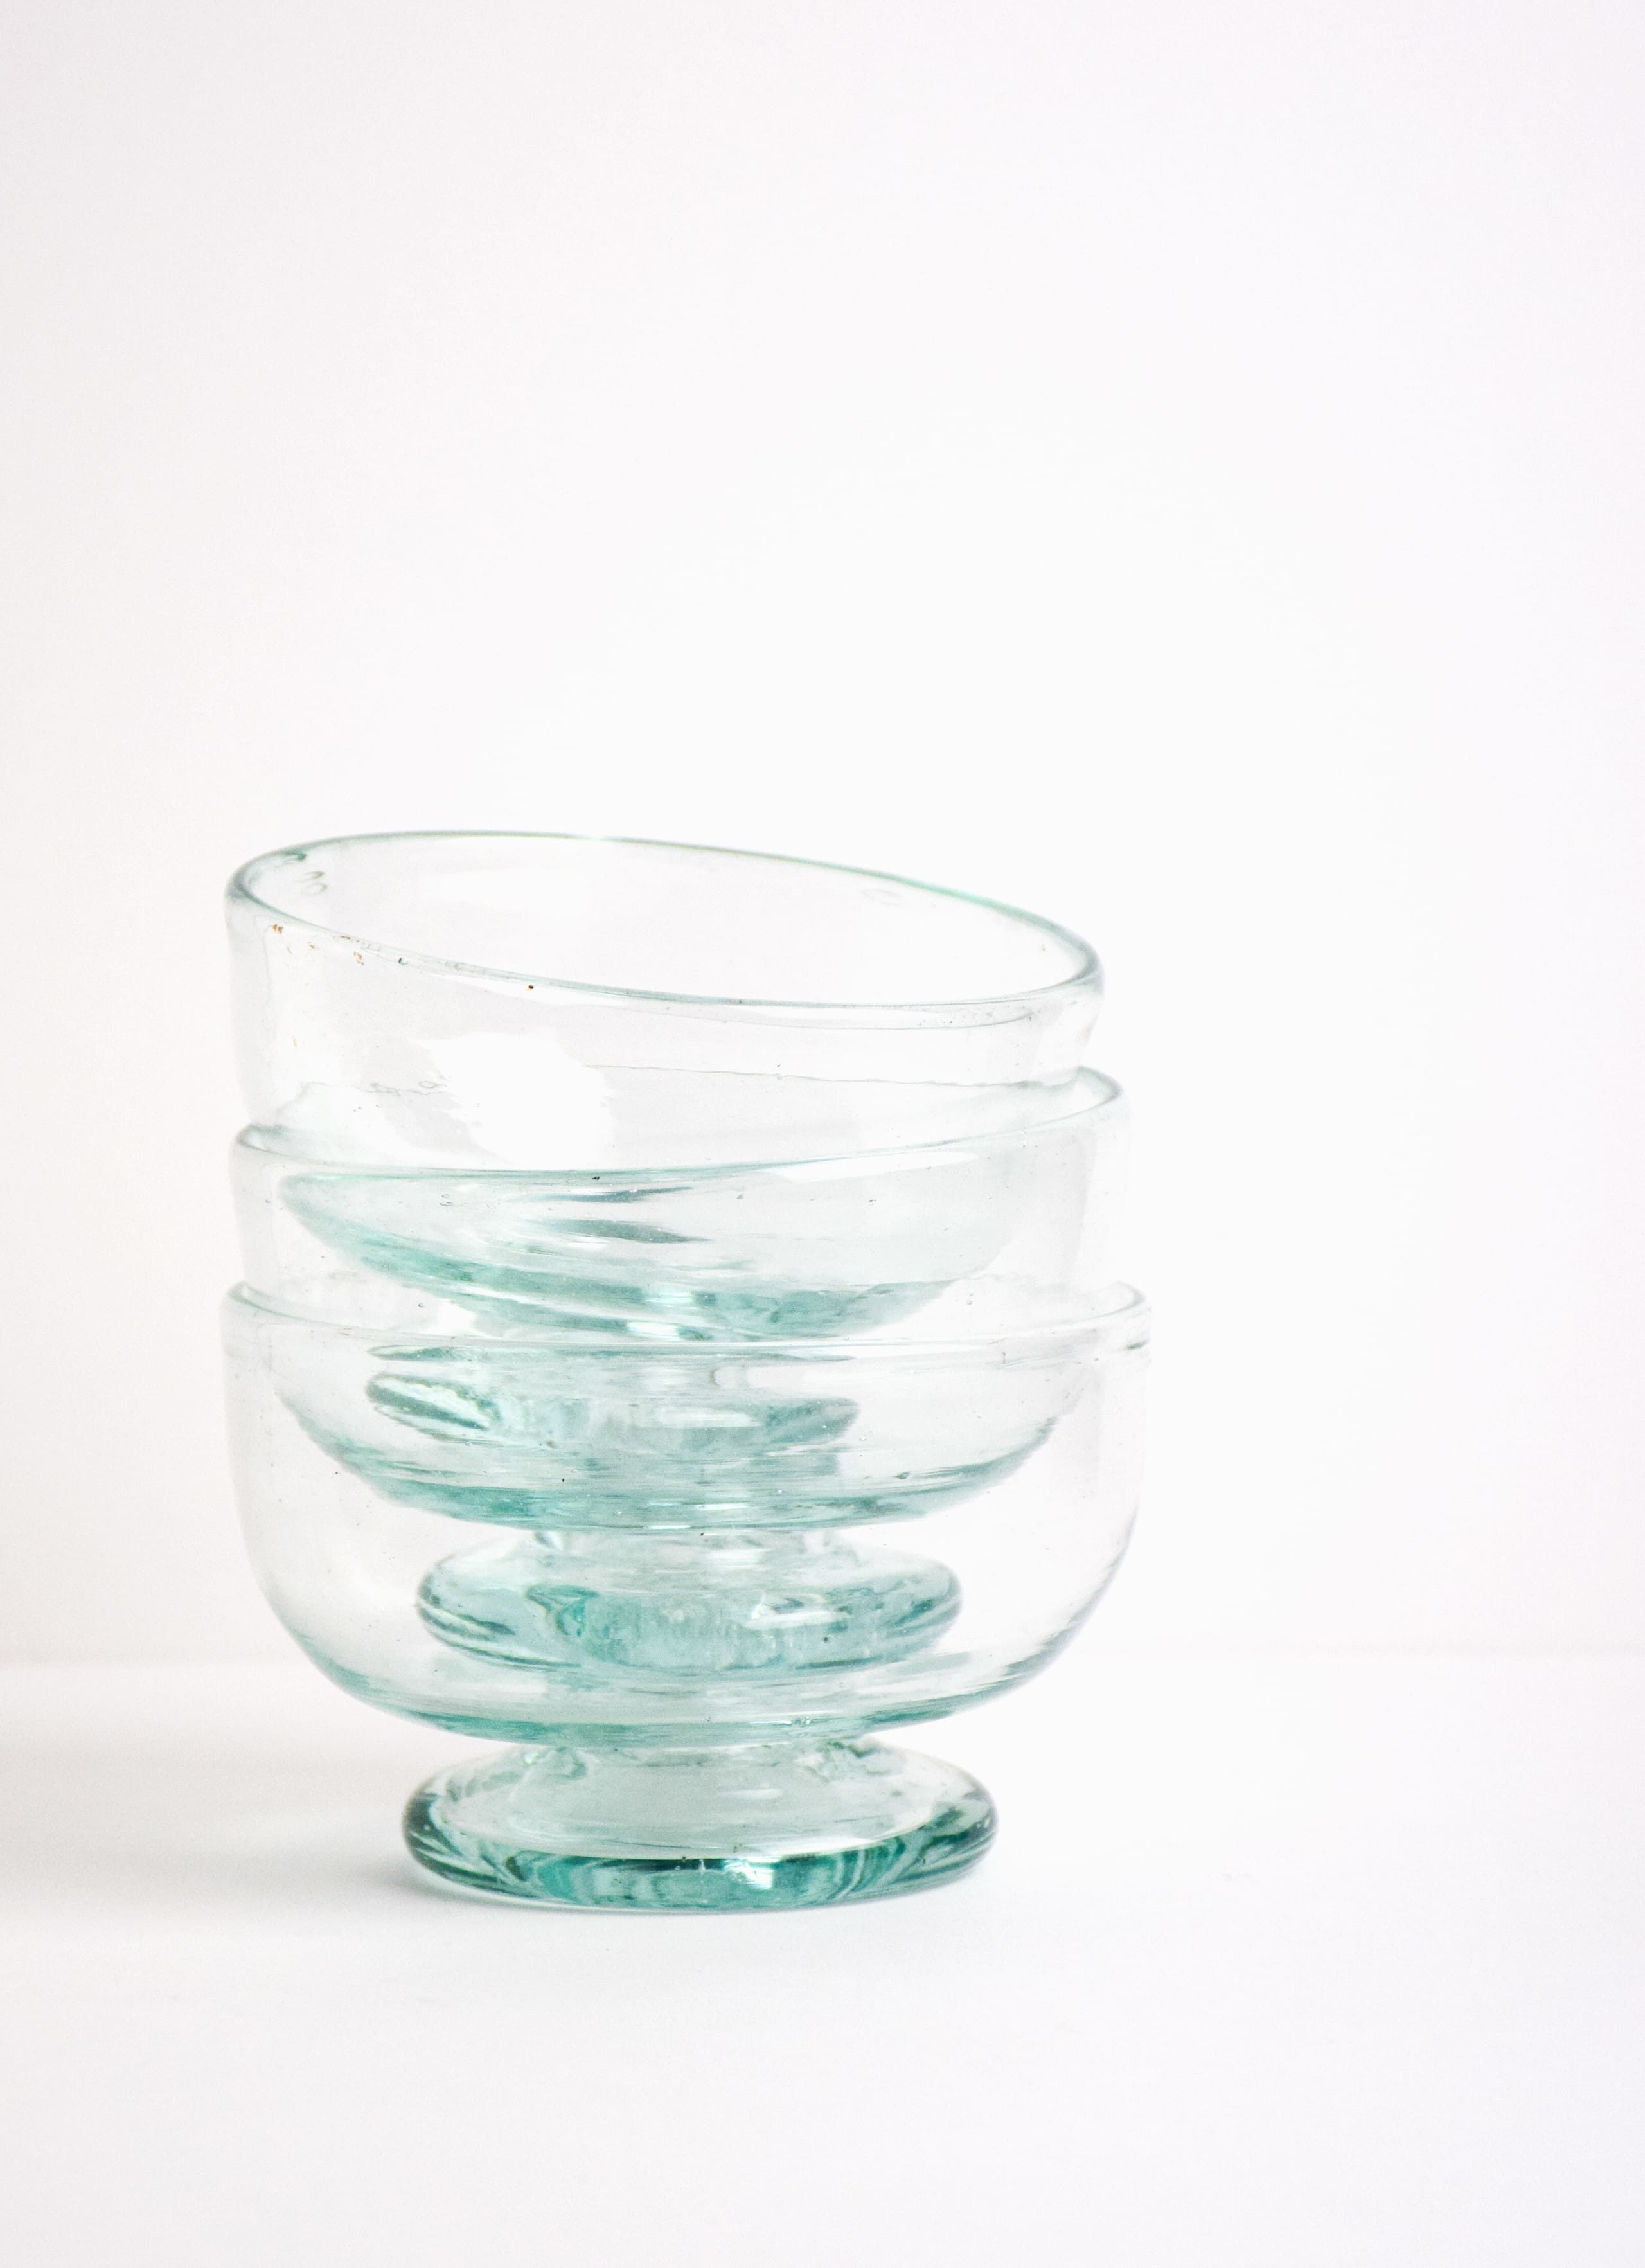 La Soufflerie - Pilgrim - transparent - recycled glass